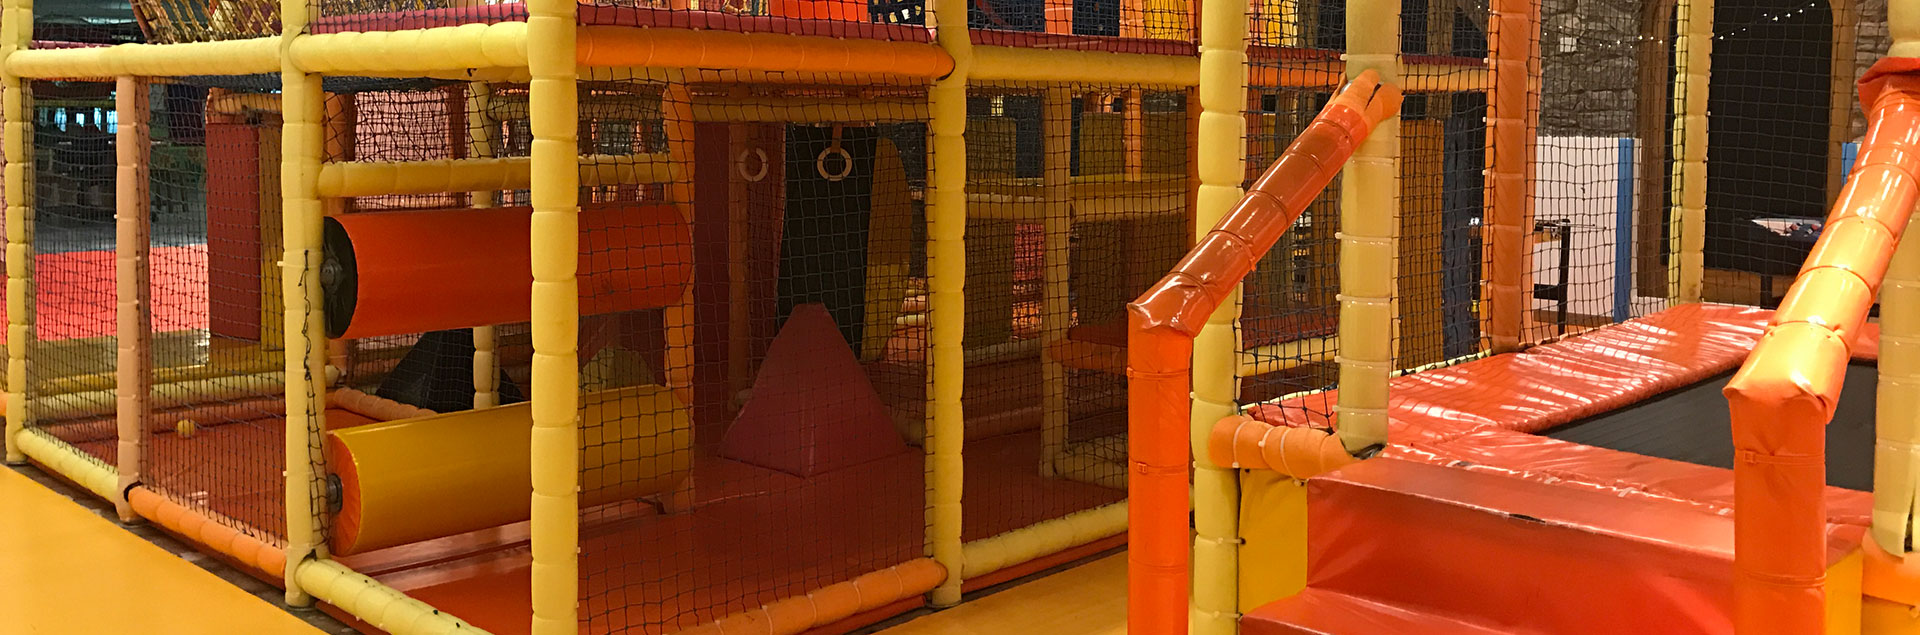 hotel in soldeu with kids club and activities for children